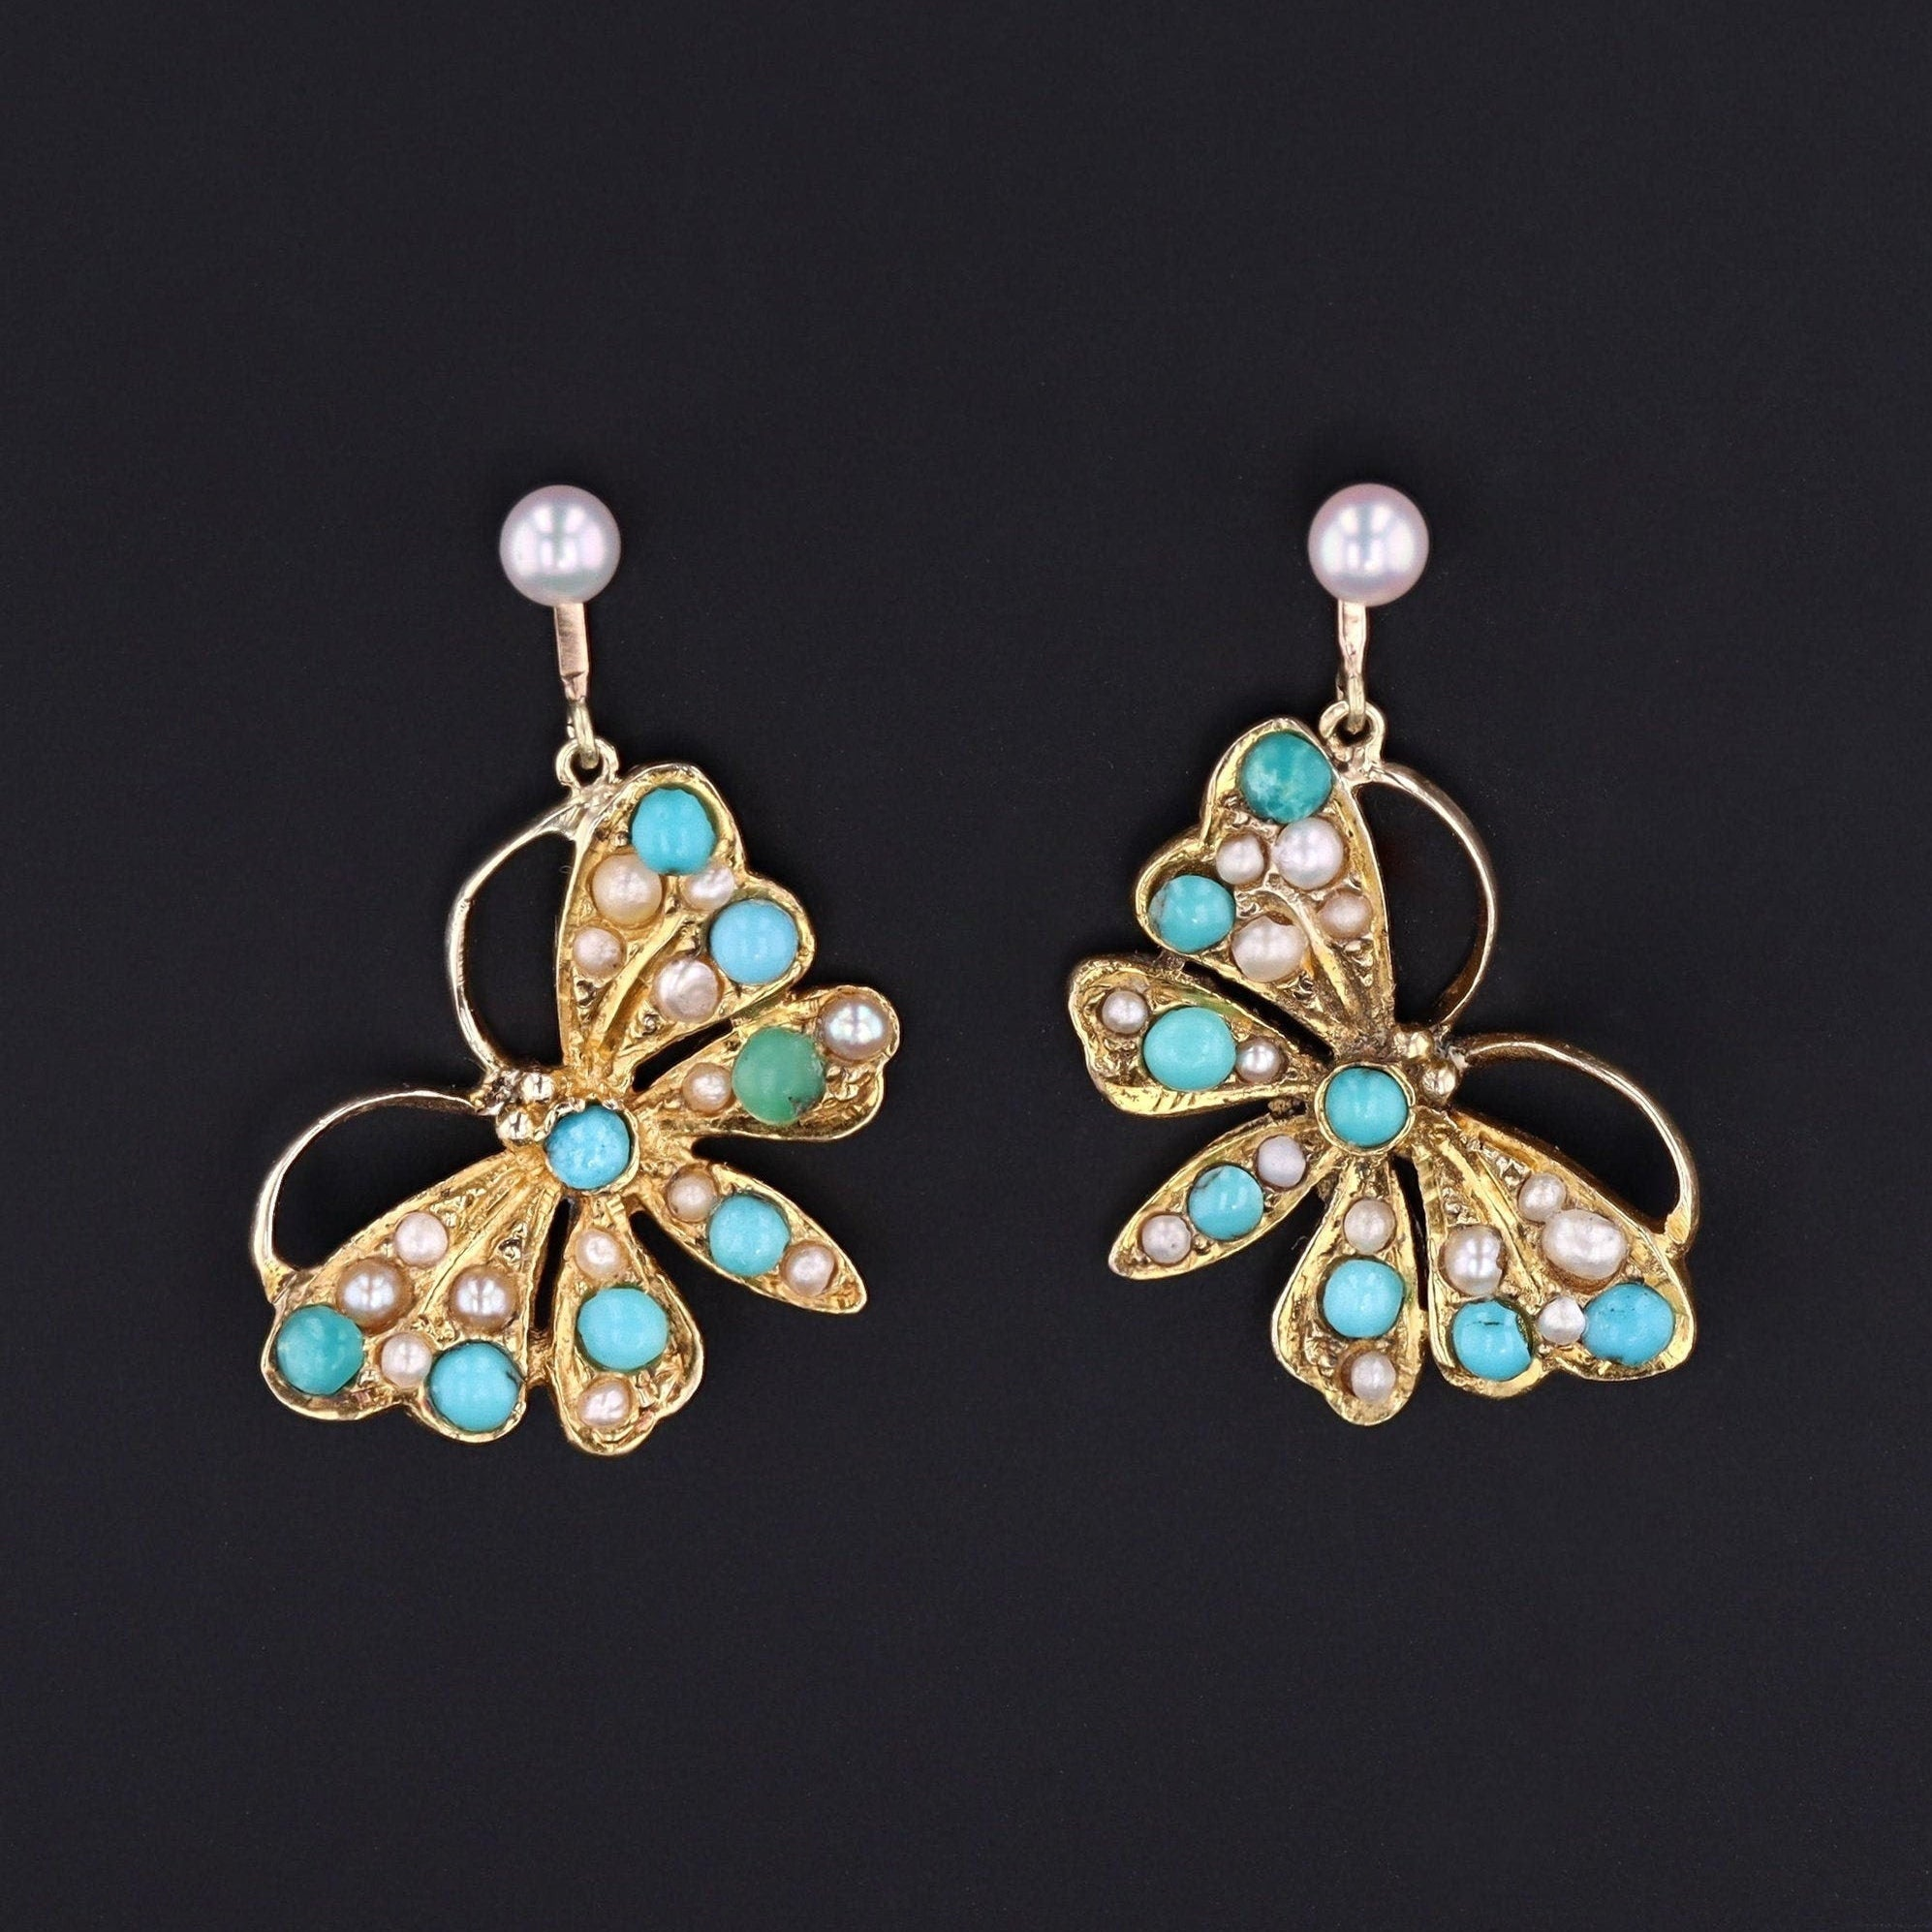 Butterfly Earrings | Antique Pin Conversion Earrings | Turquoise & Pearl Earrings | 14k Gold Earrings | Dangle Earrings | Bridal Earrings